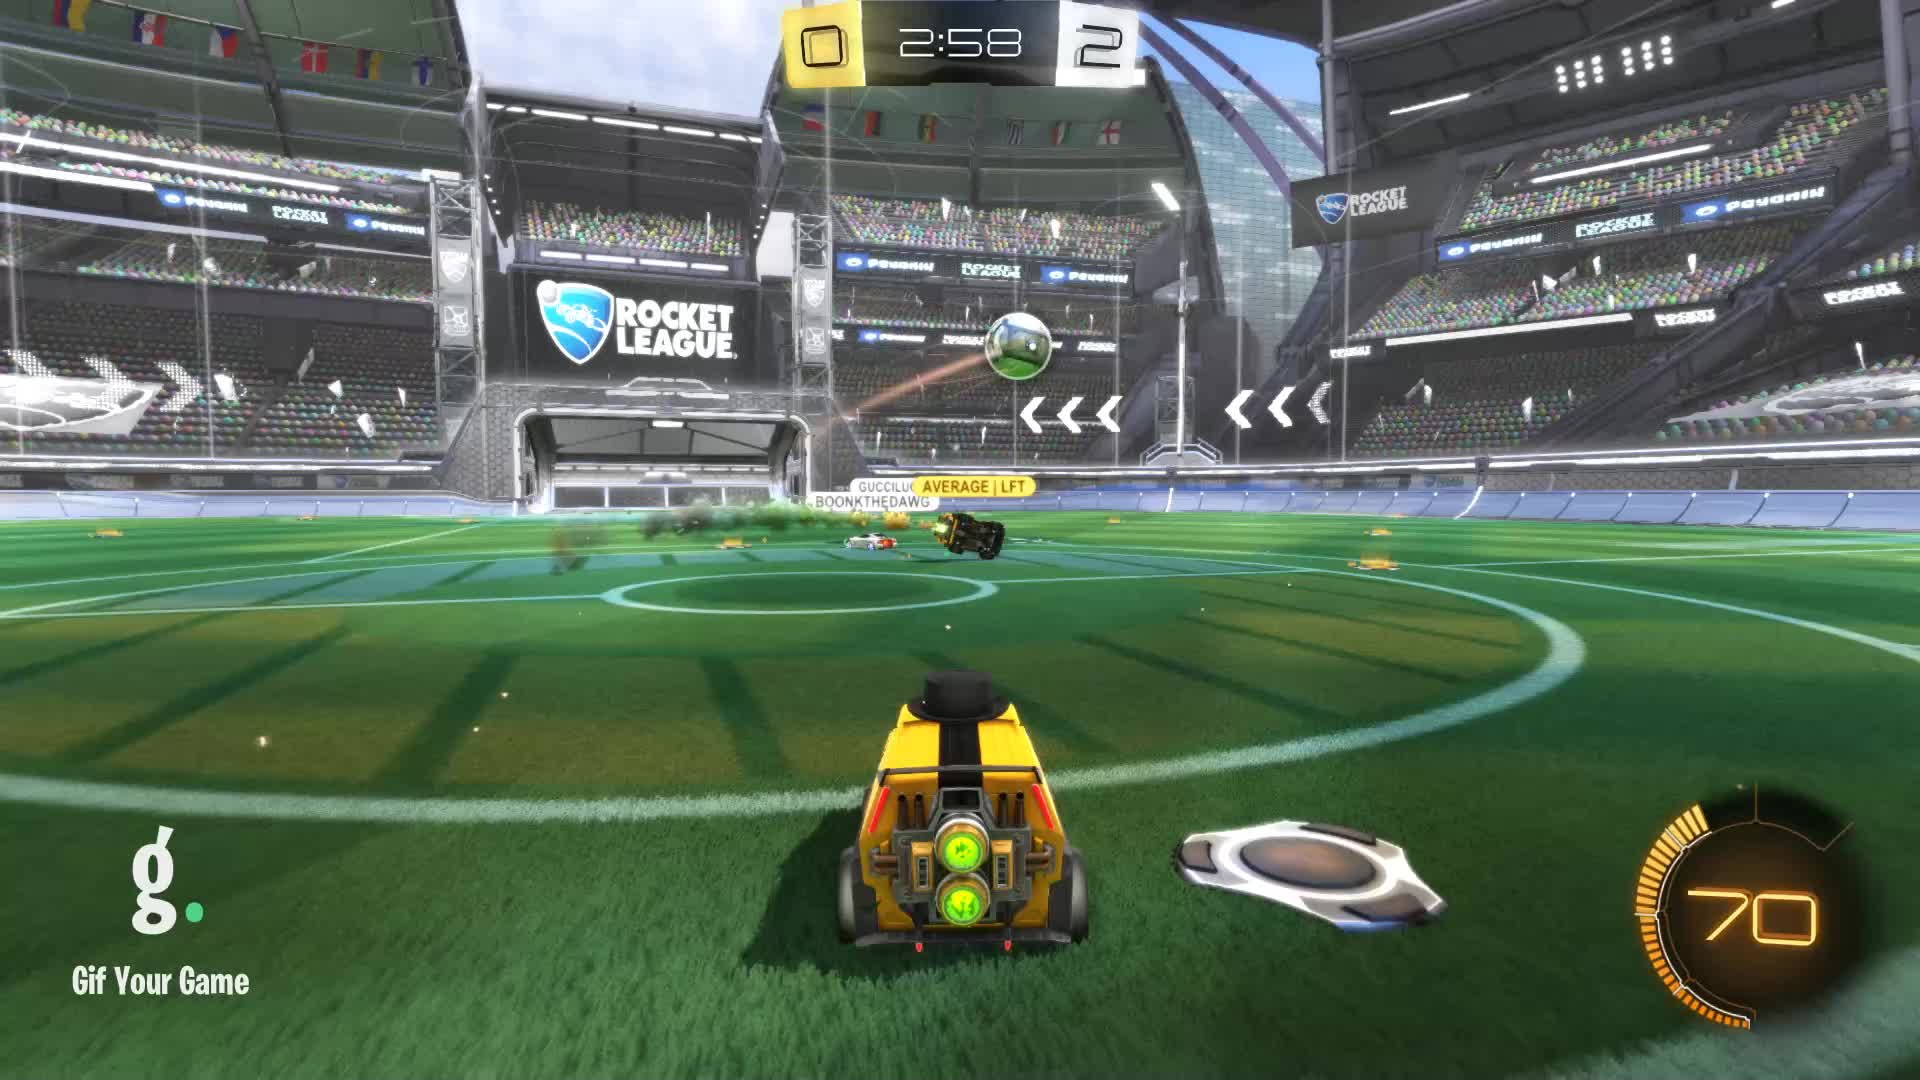 Gif Your Game, GifYourGame, Goal, Rocket League, RocketLeague, datboi, Goal 3: datboi GIFs